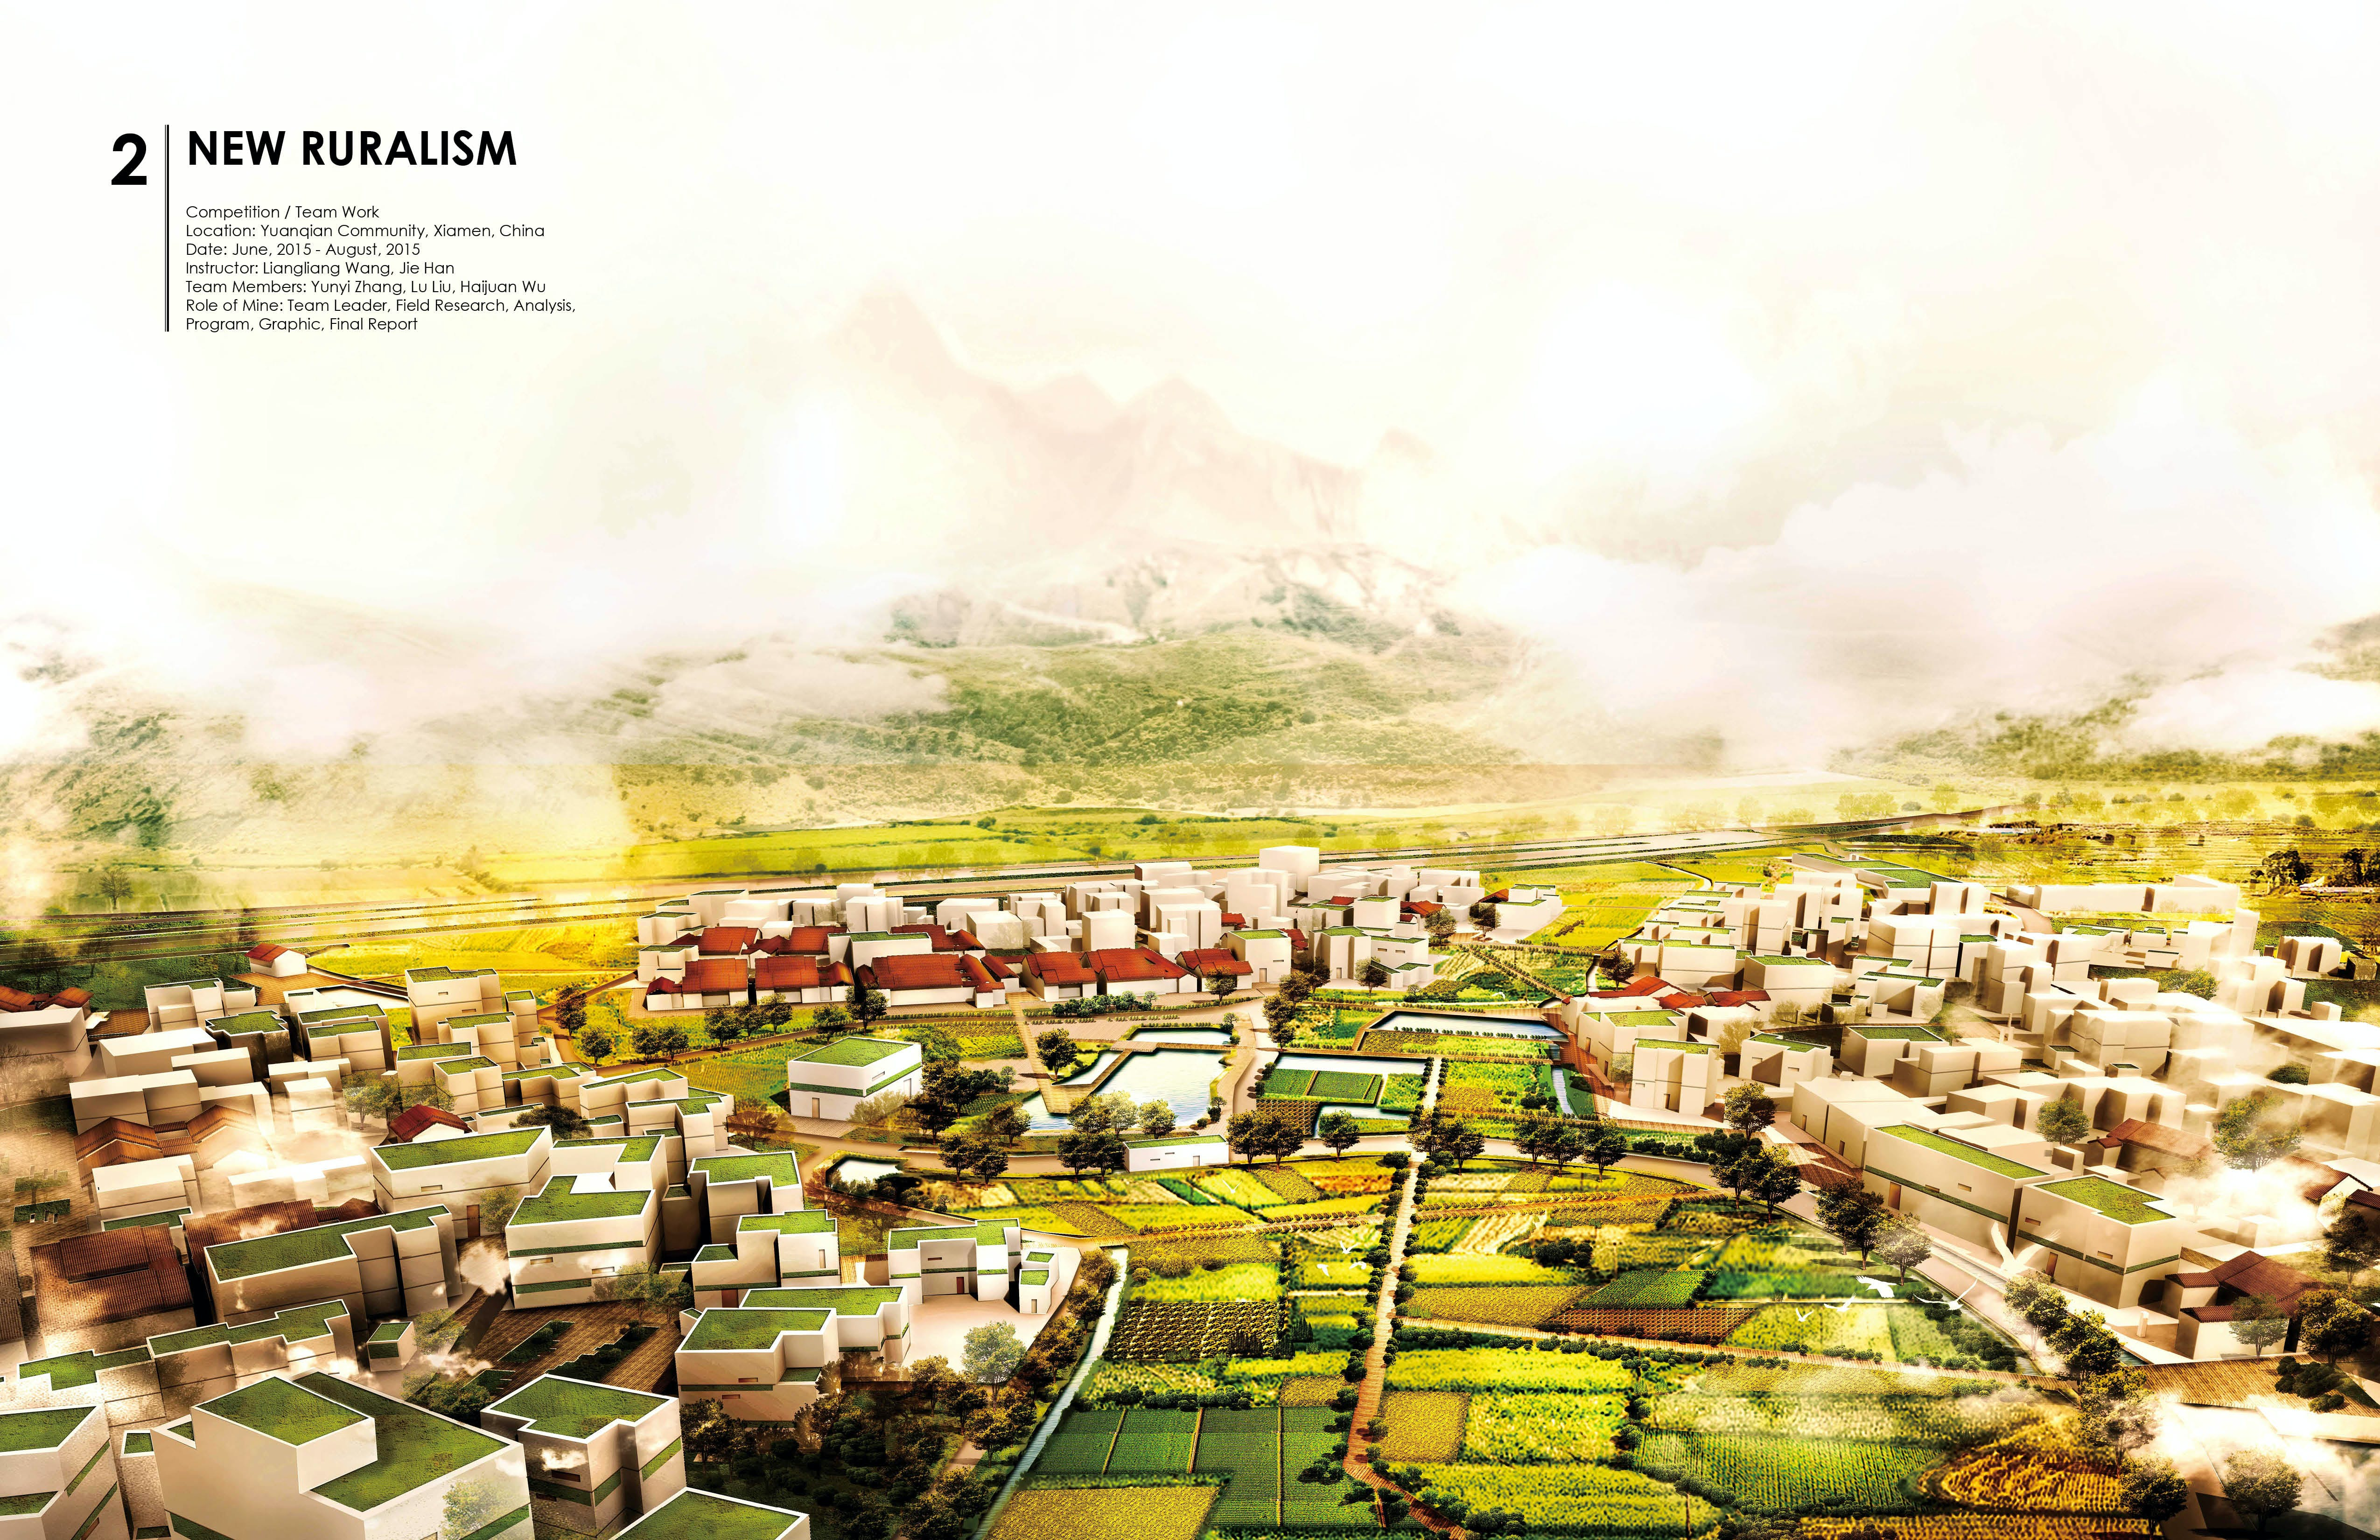 New Ruralism Development Planning Of Yuanqian Community In